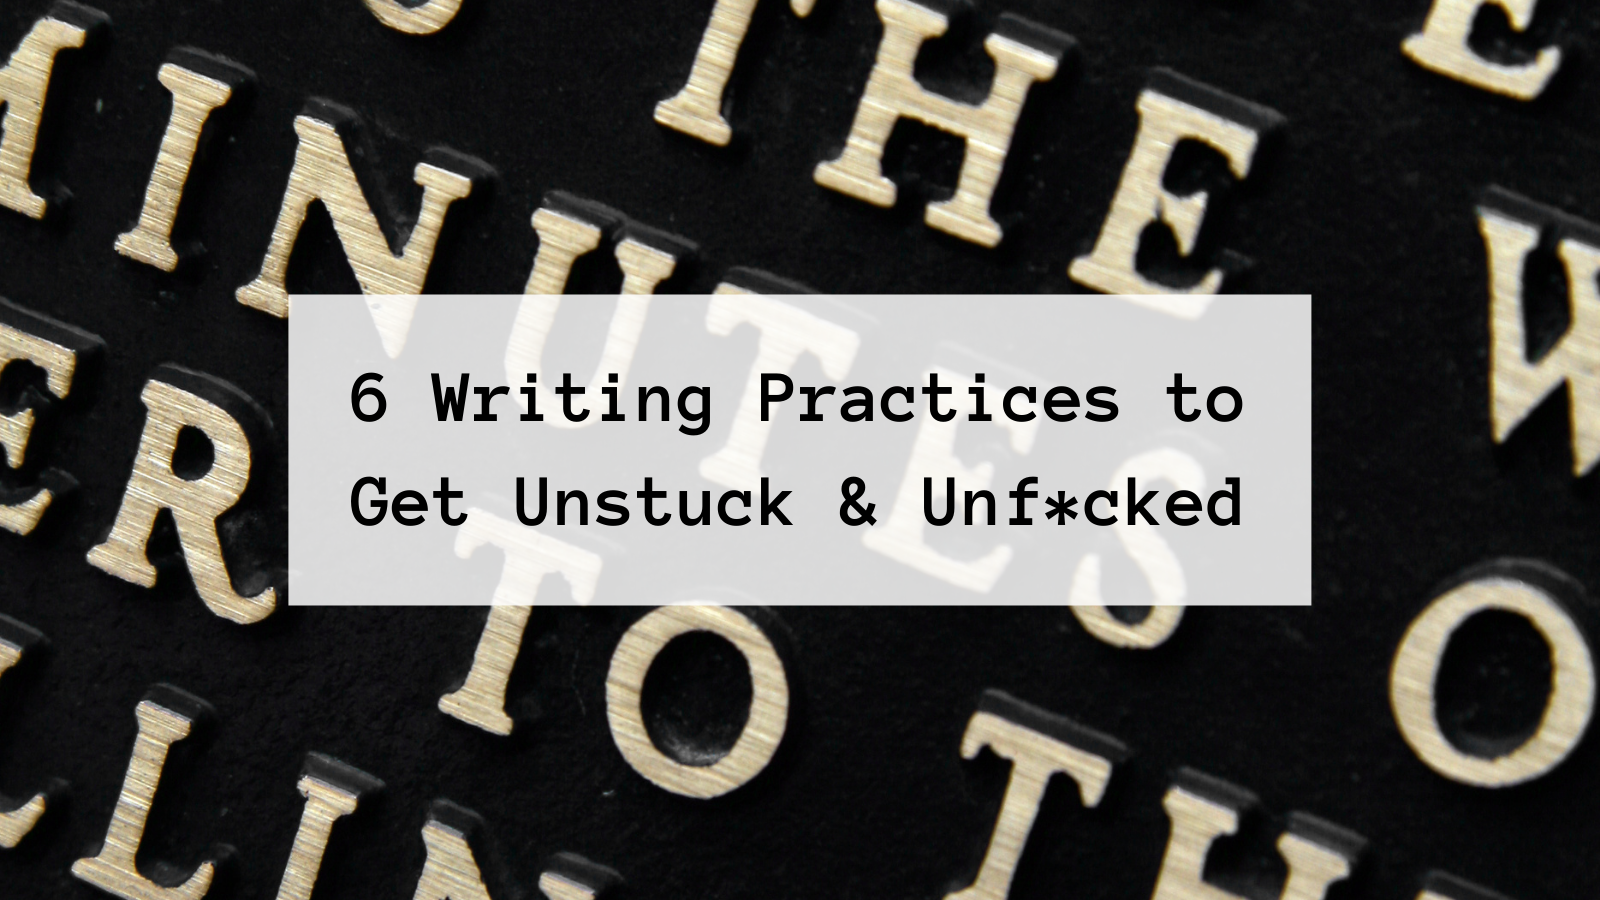 raised type font letters in white against black are background to type font stating: 6 Writing Practices to Get Unstuck & Unf